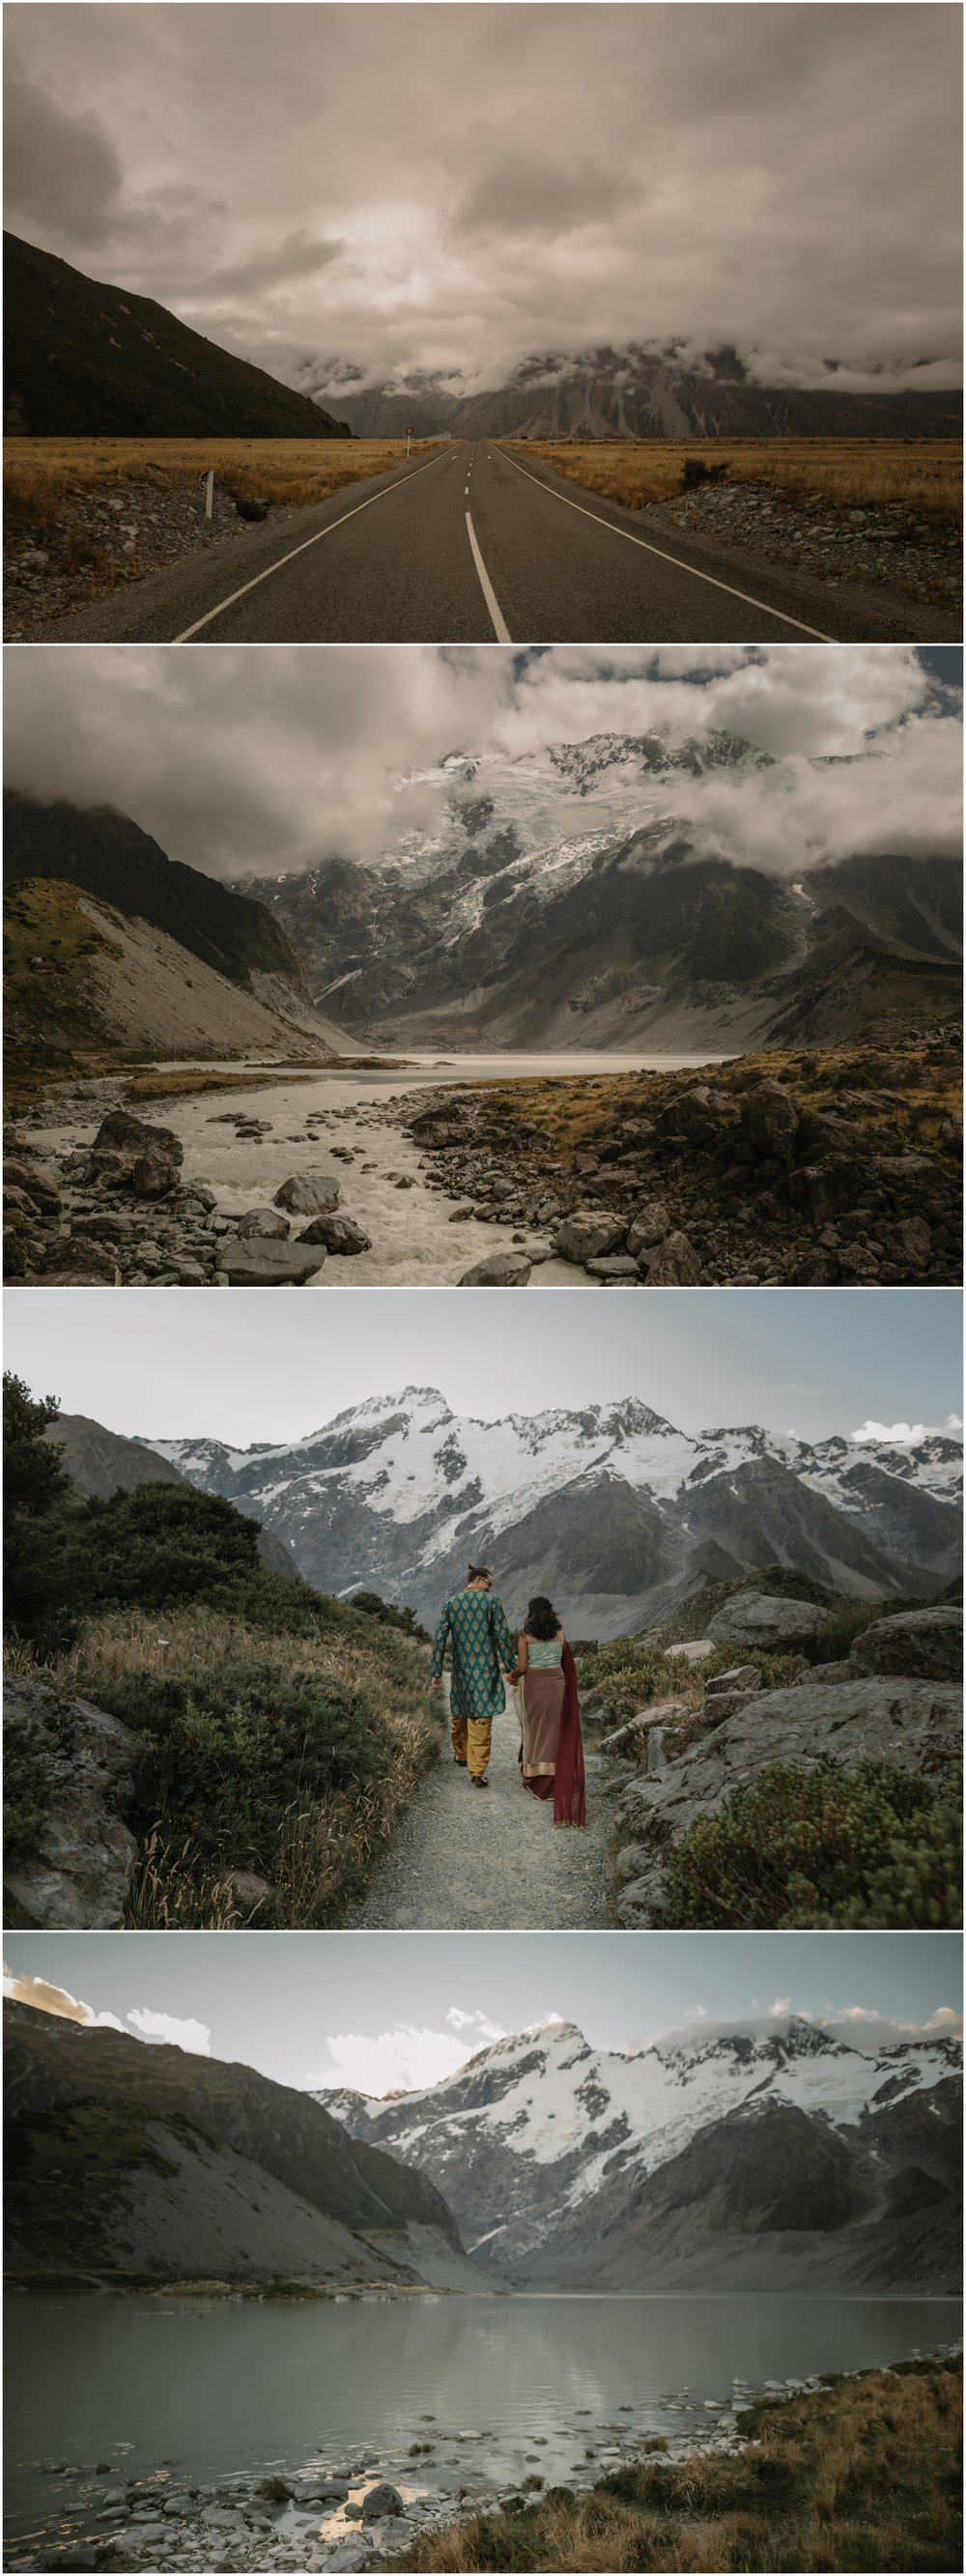 Punjabi elopement New Zealand - Sirjana & Ben 012.JPG